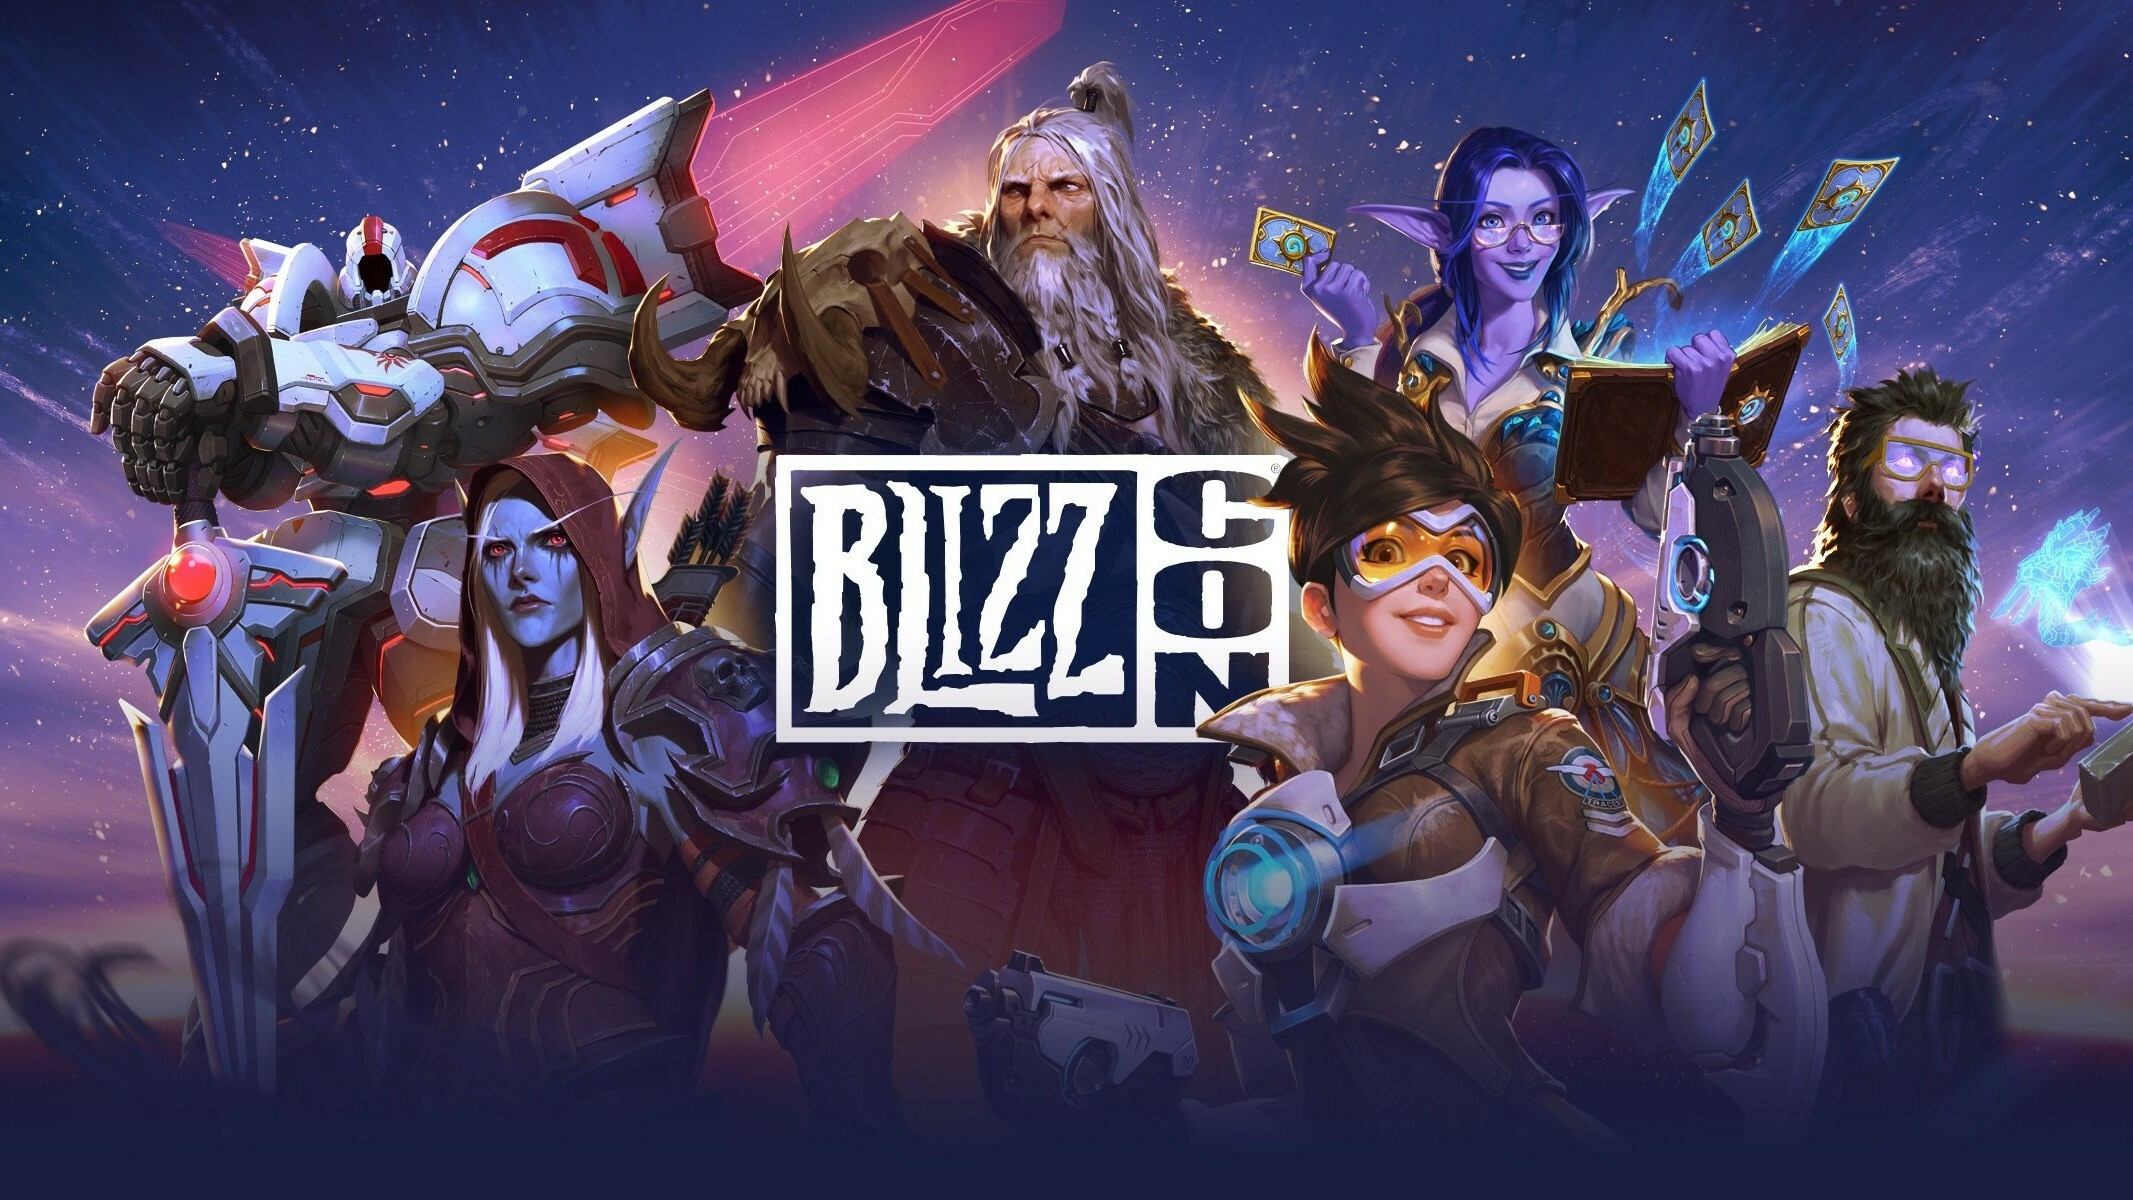 BlizzConline 2022 Has Been Canceled as Blizzard What BlizzCon Will Look Like in the Future 3